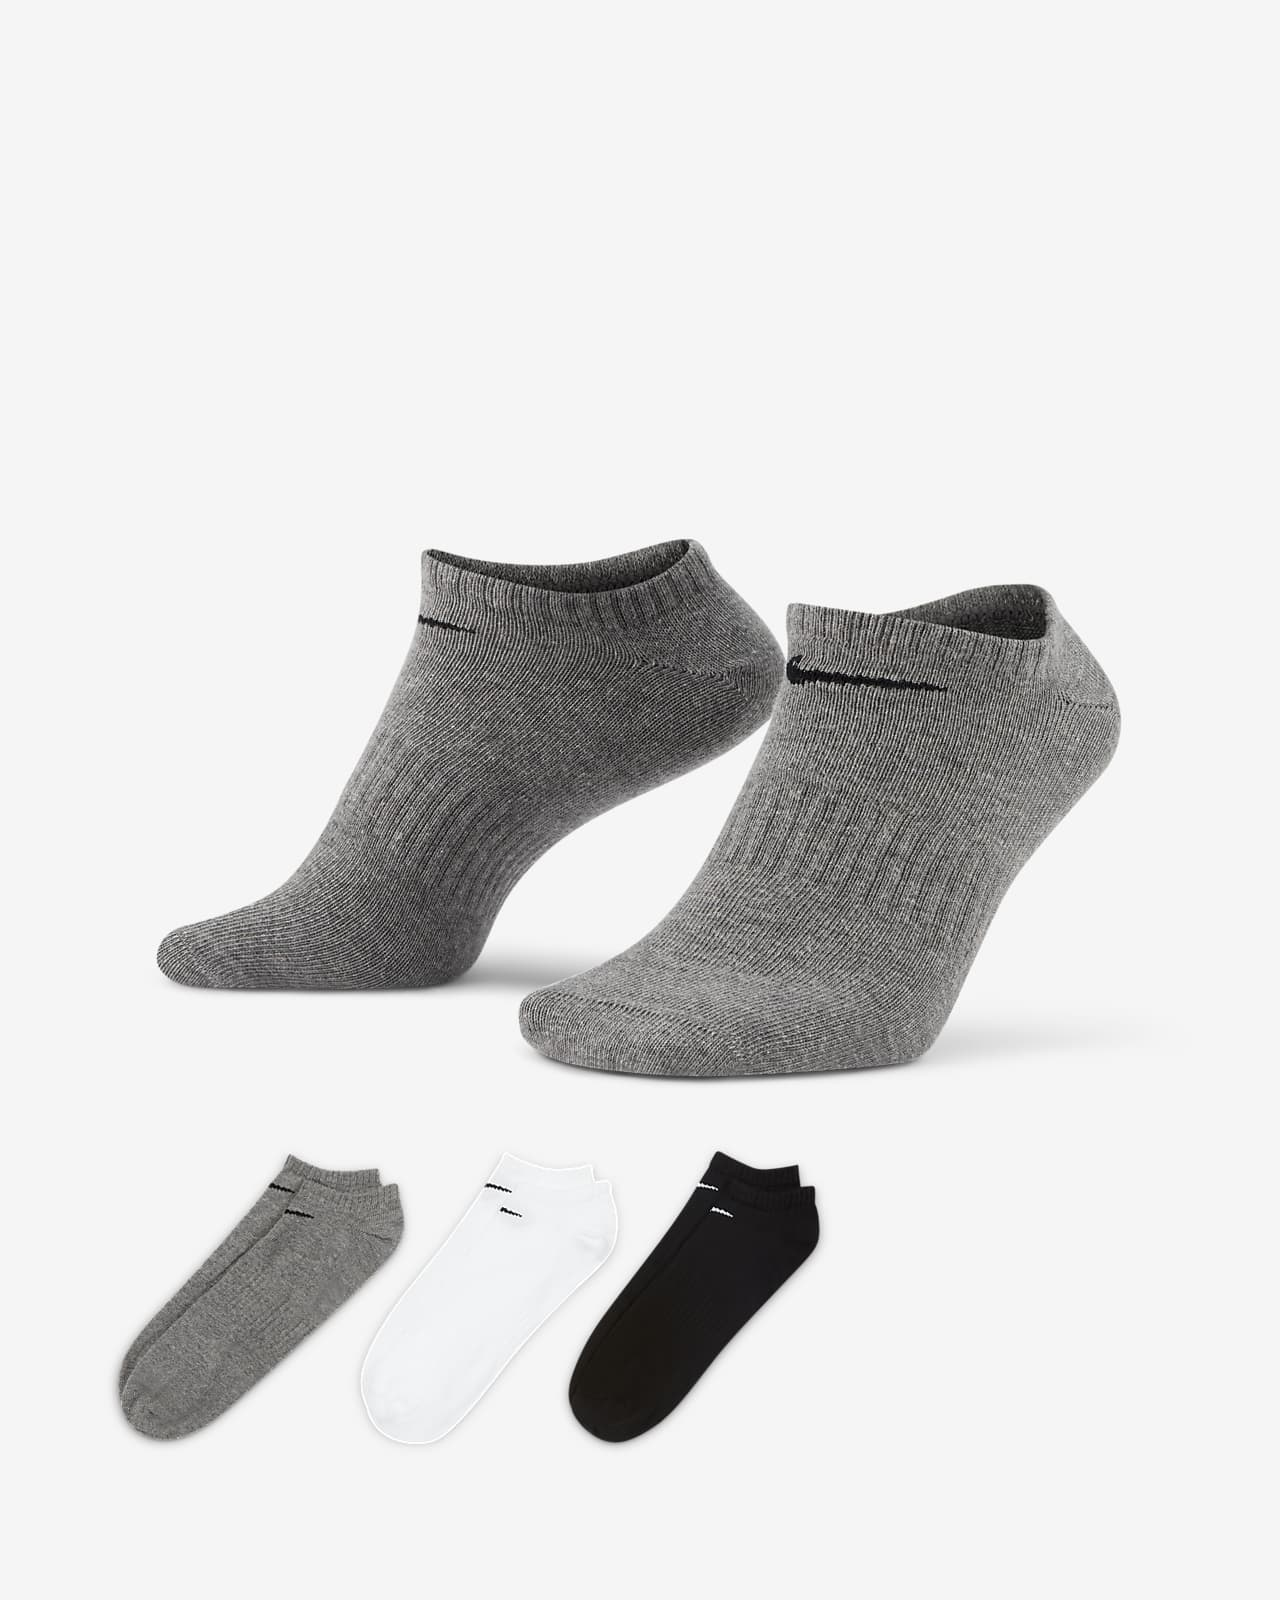 Chaussettes de training invisibles Nike Everyday Lightweight (3 paires)